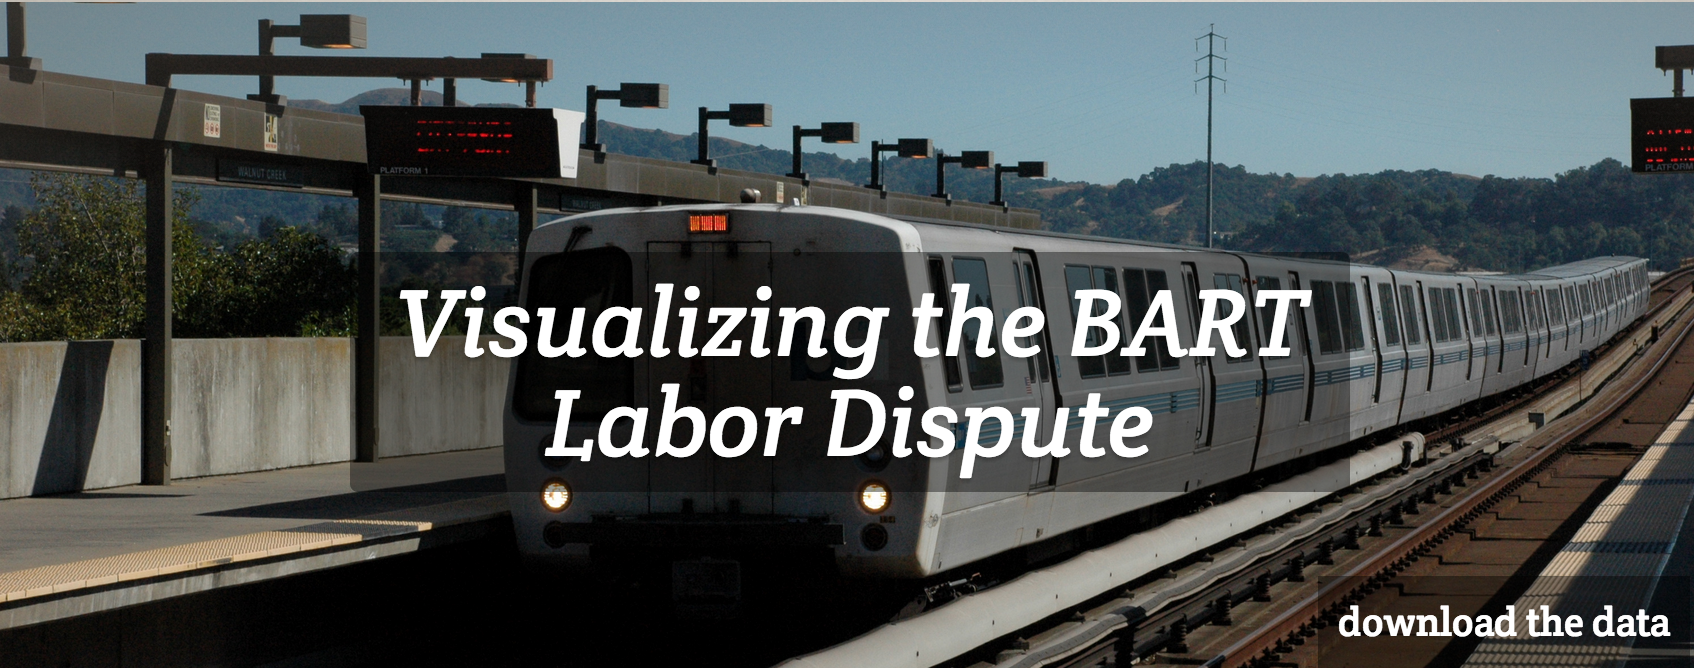 visualizing the BART labor dispute